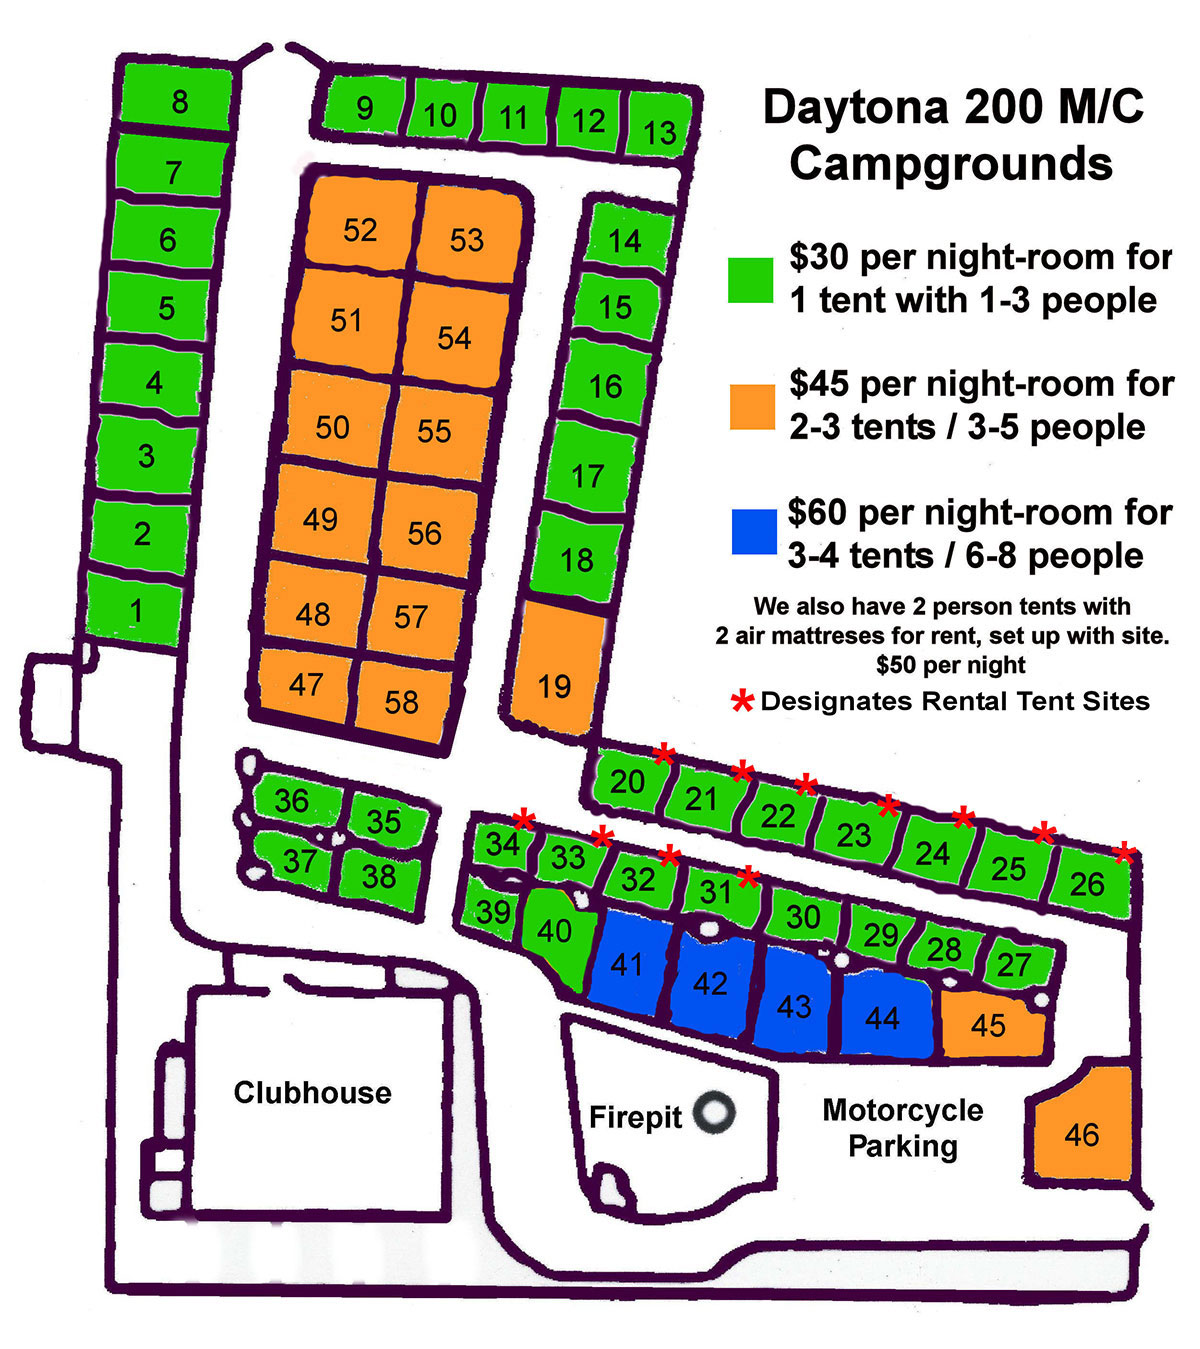 Daytona Beach Campground Layout